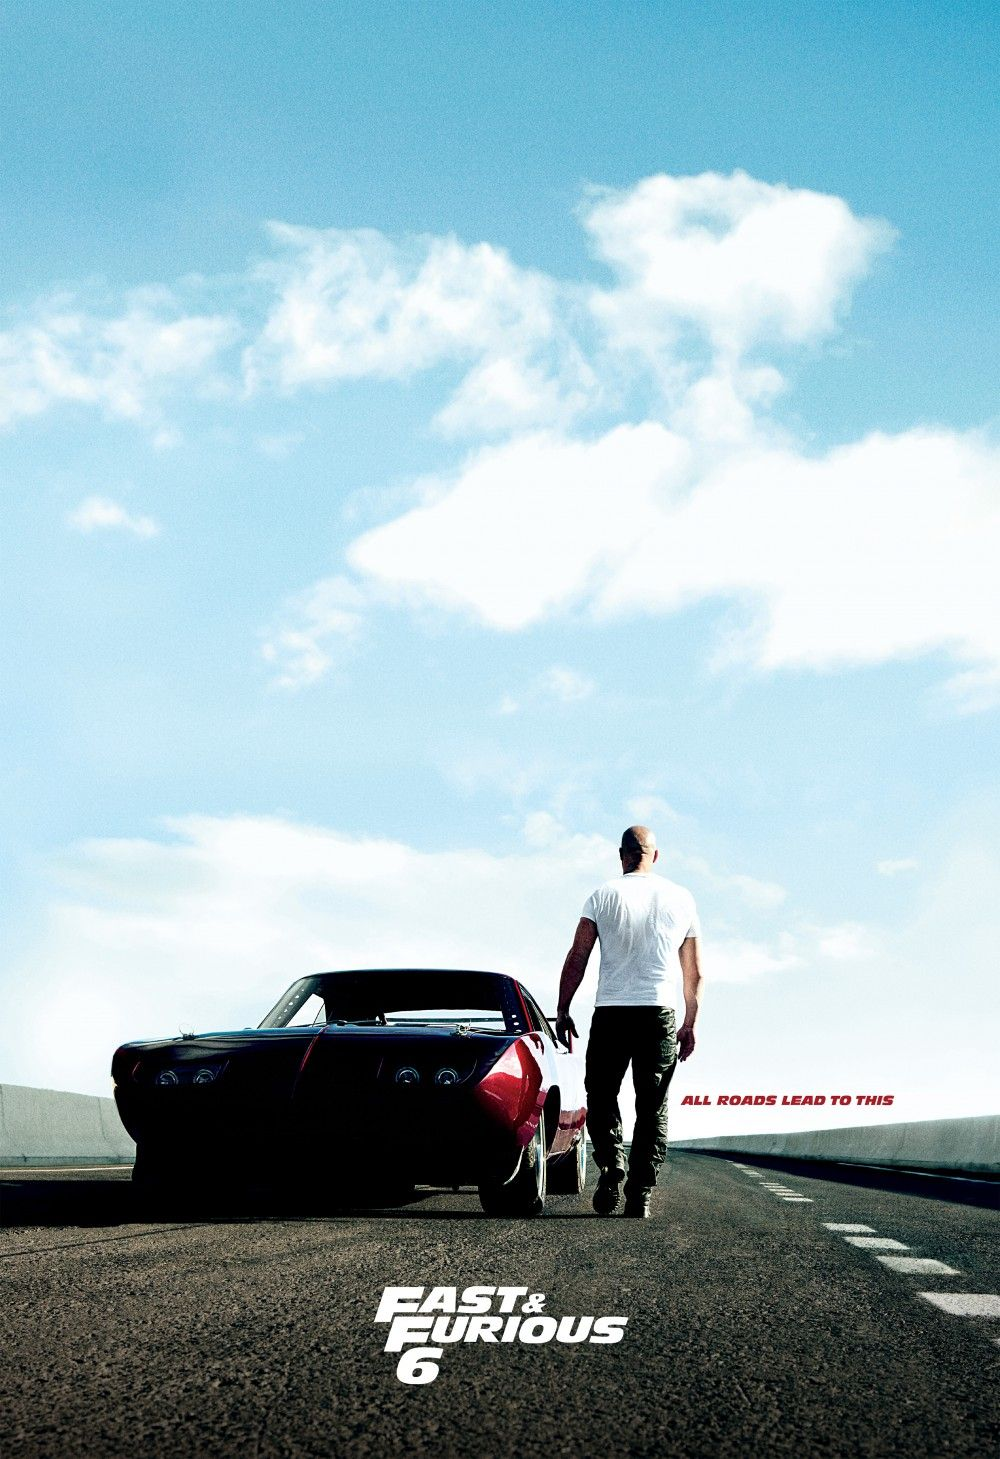 Fast And Furious 6 So Excited For This Fast And Furious Vin Diesel Furious 6